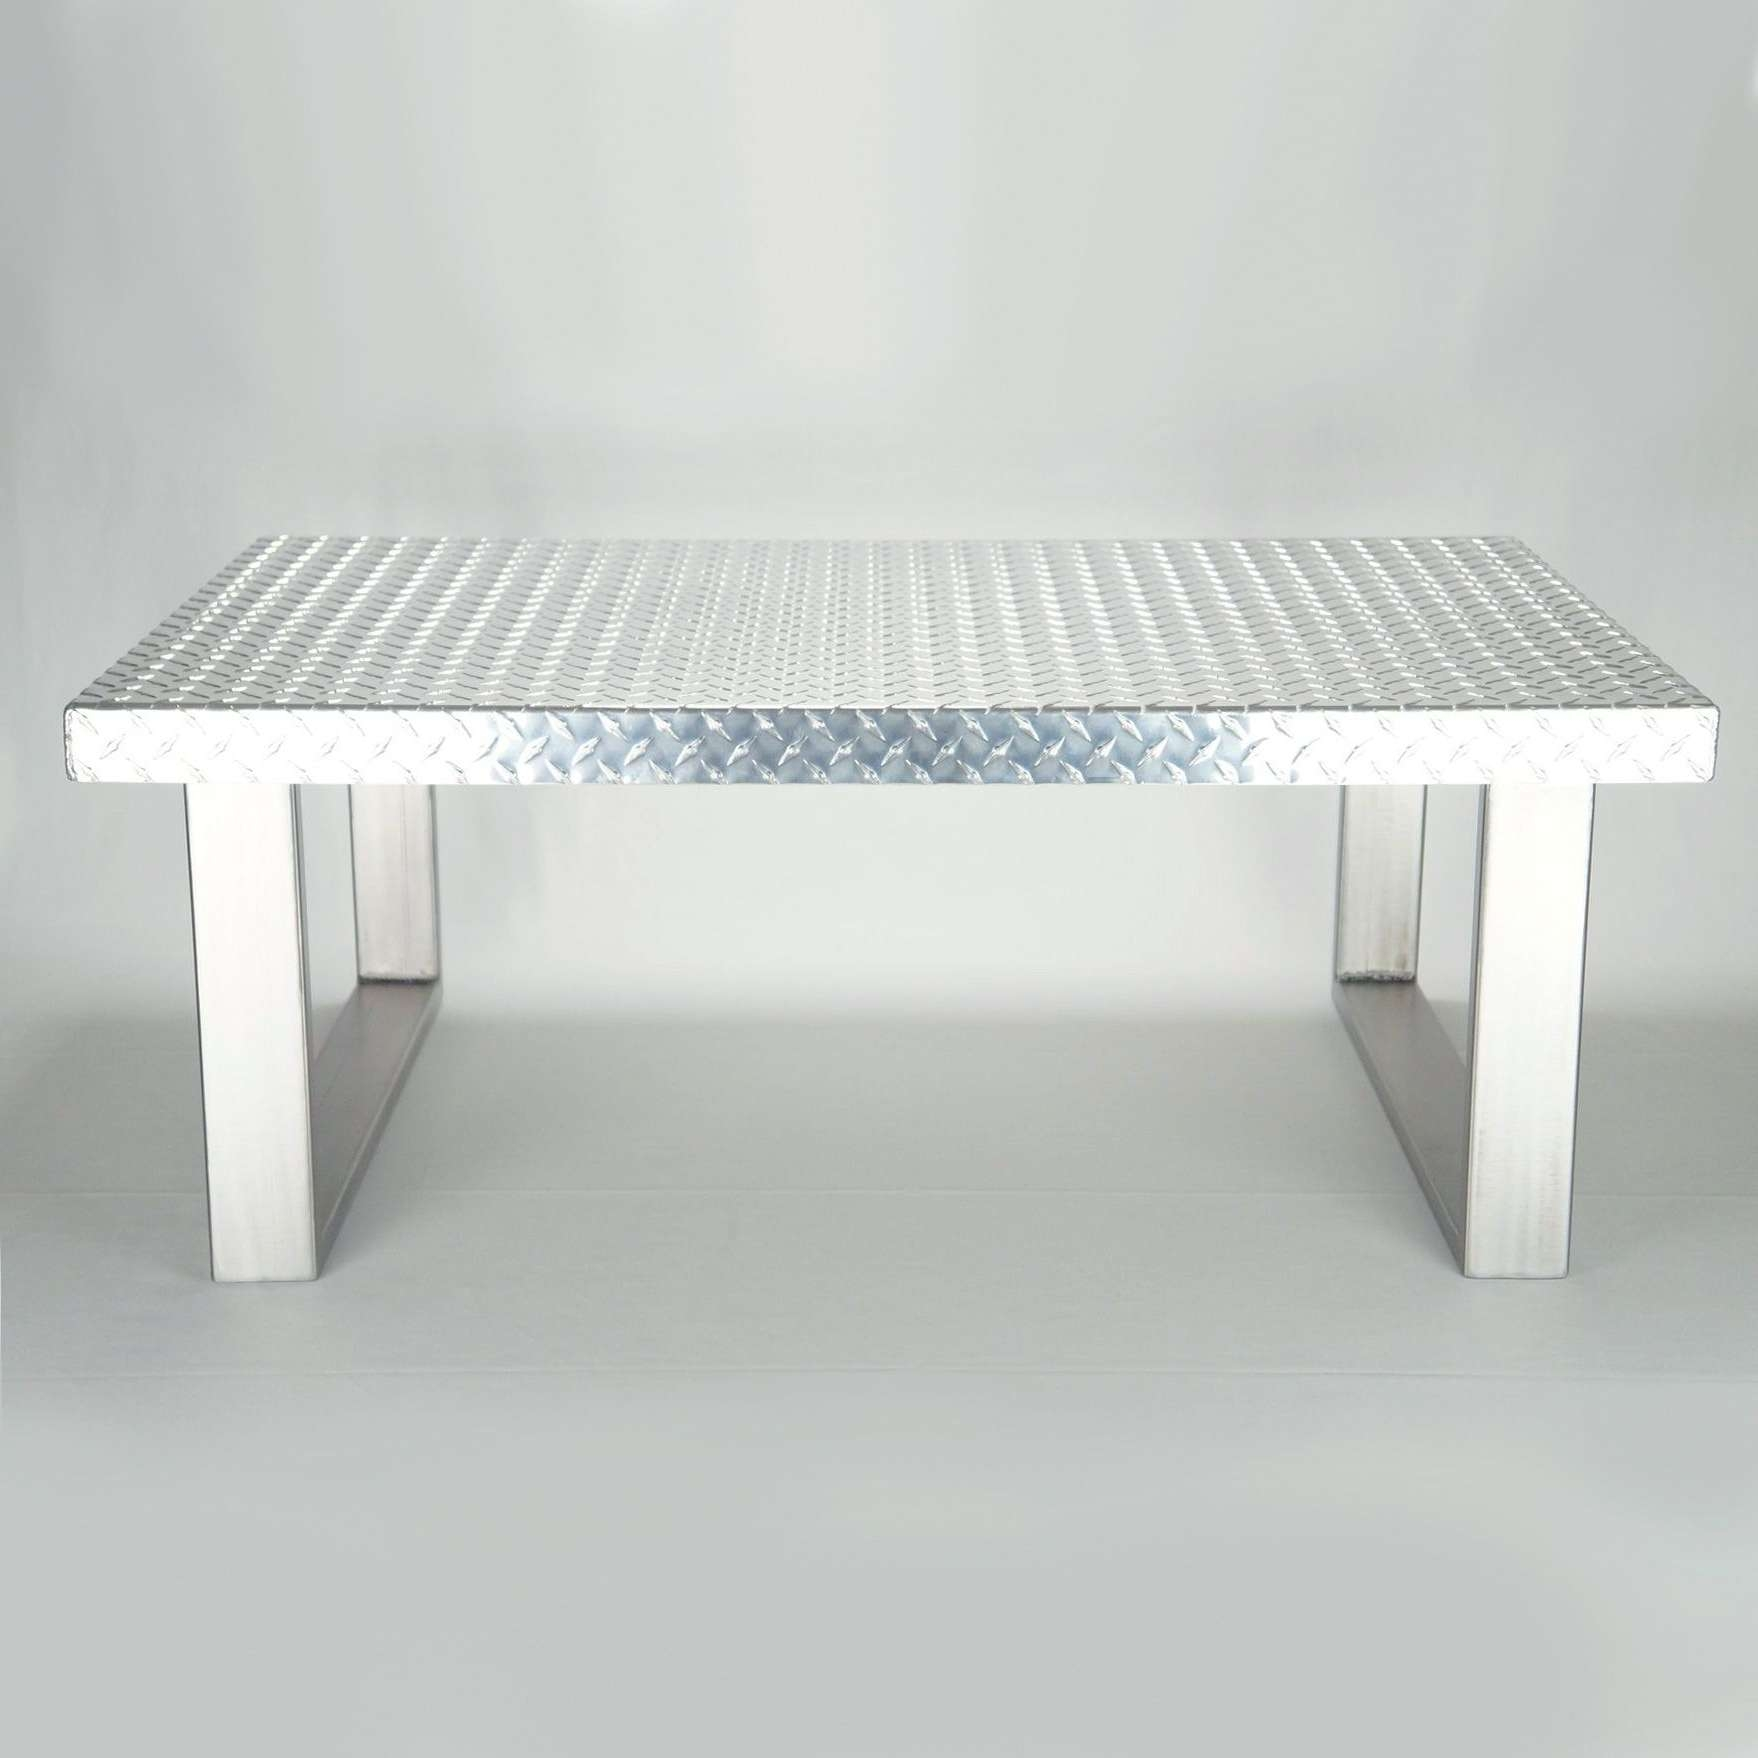 Best And Newest Metal Coffee Tables Inside Hand Made Industrial Diamond Plate Metal Coffee Tableck (View 4 of 20)